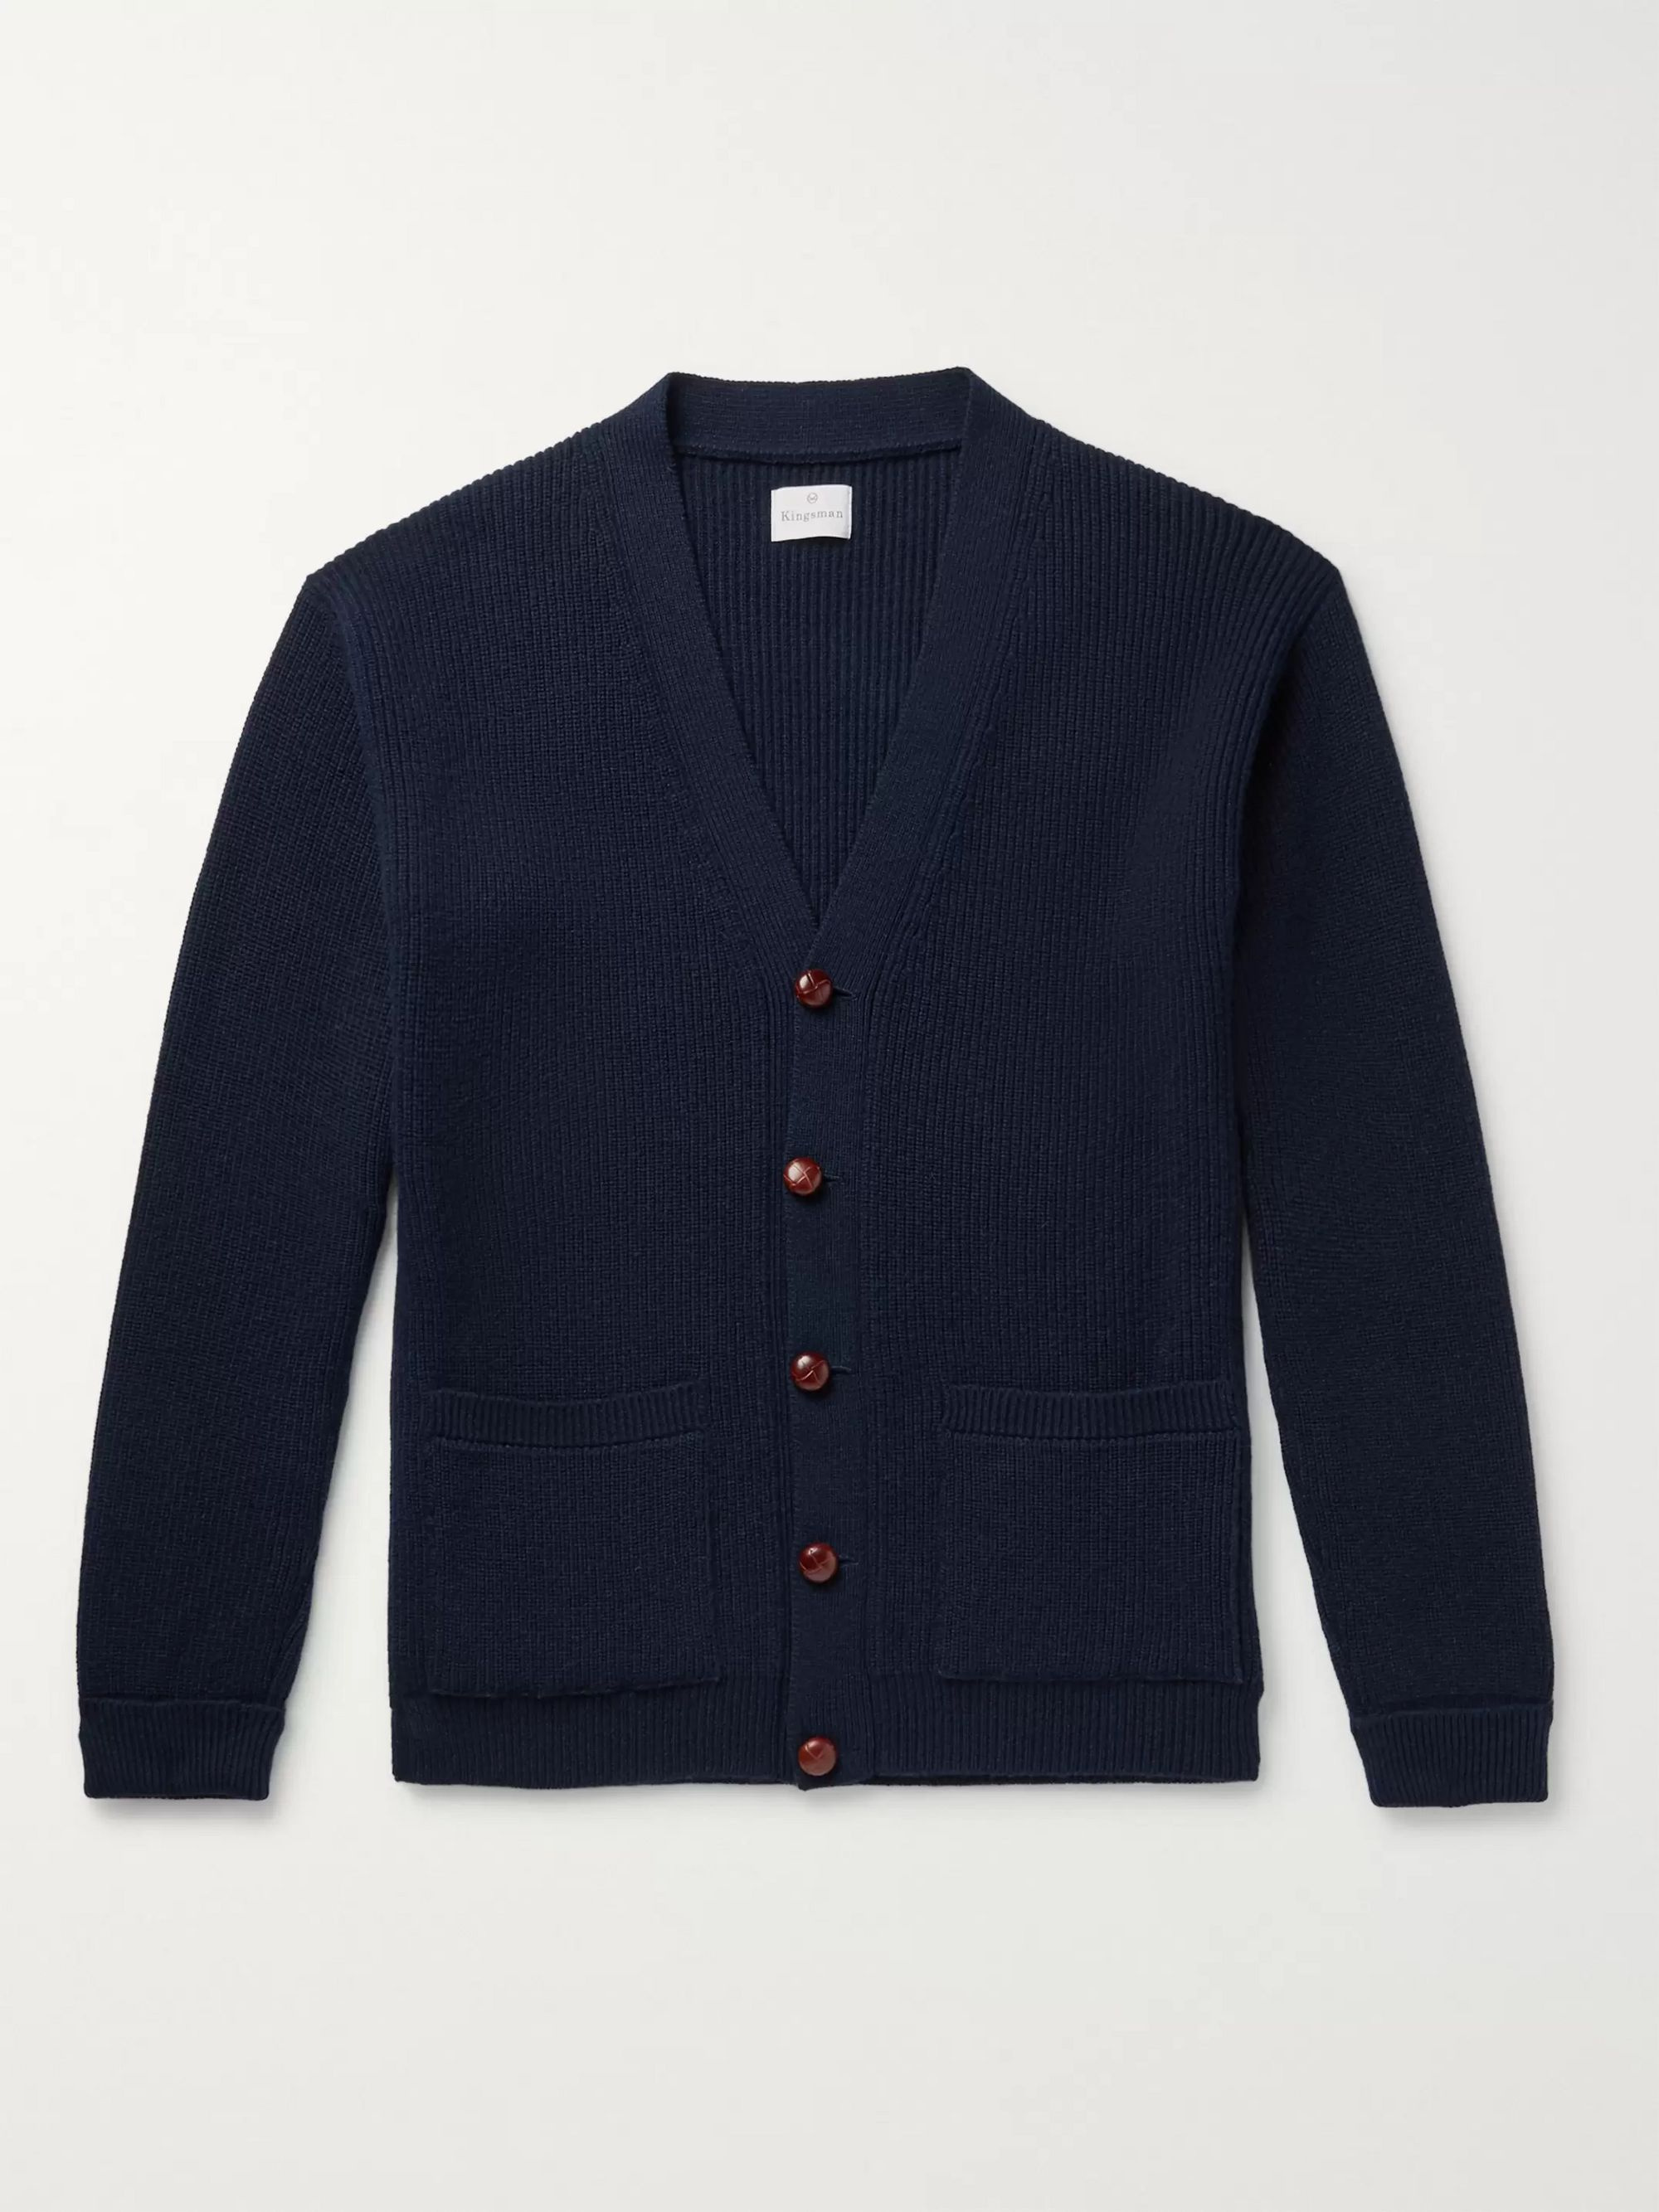 Kingsman Harry Ribbed Cashmere Sweater